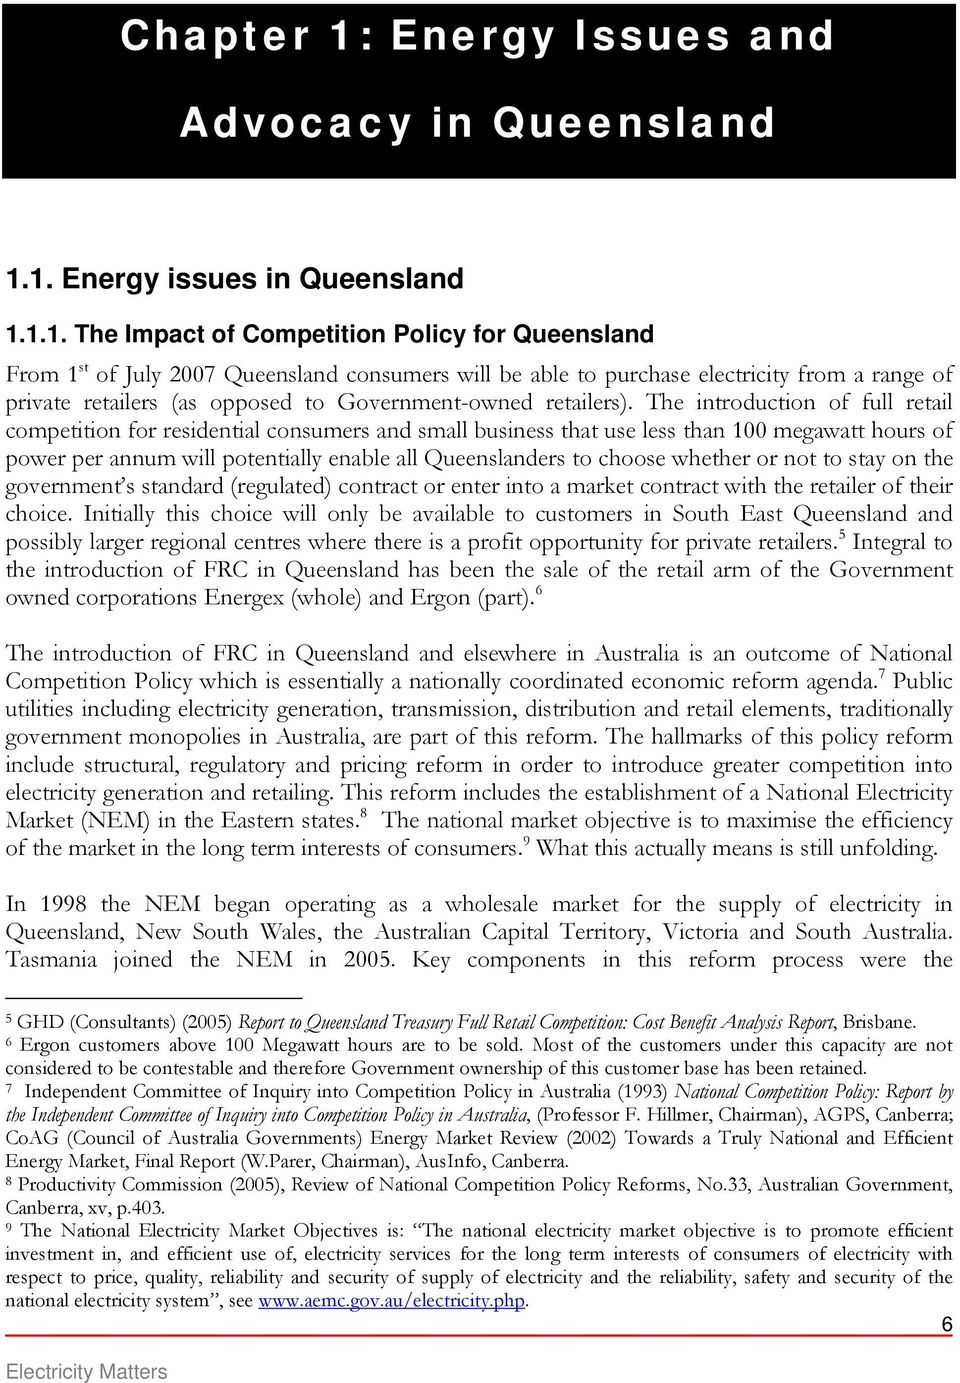 1. Energy issues in Queensland 1.1.1. The Impact of Competition Policy for Queensland From 1 st of July 2007 Queensland consumers will be able to purchase electricity from a range of private